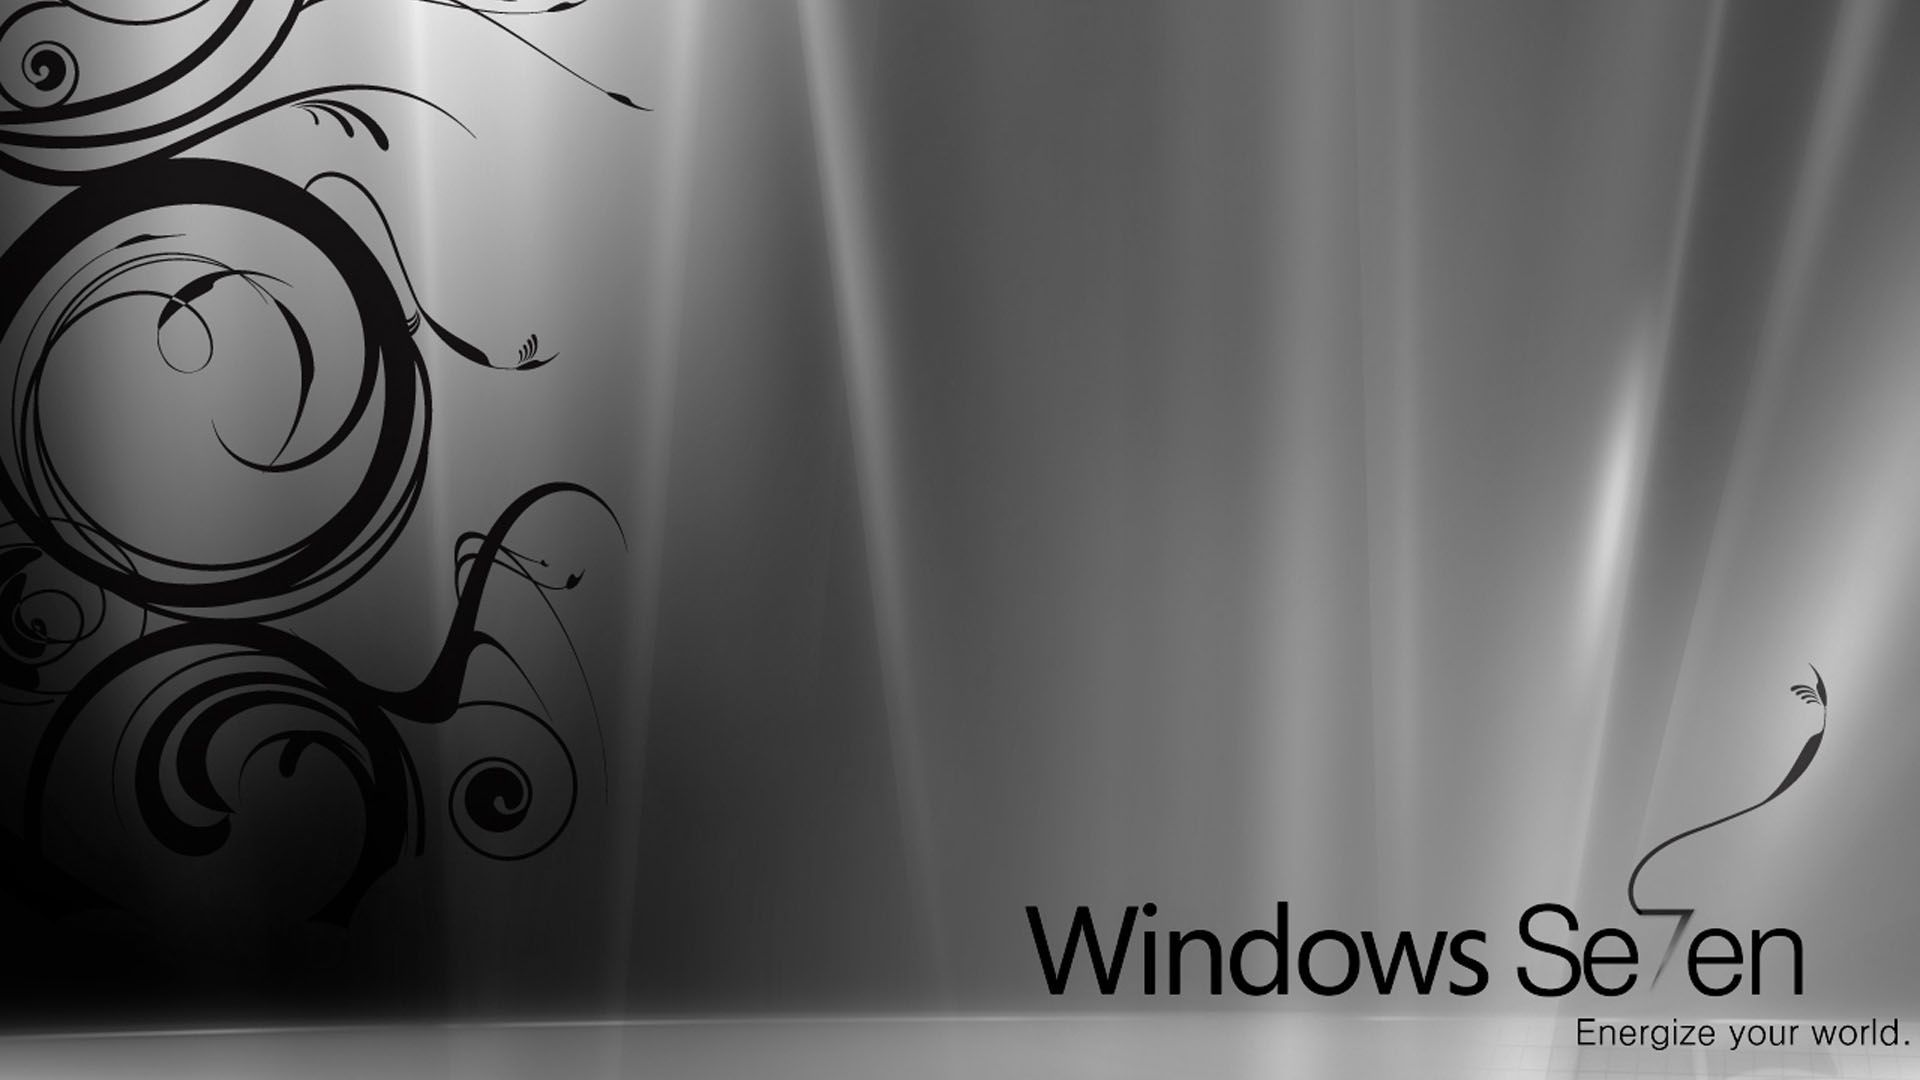 Windows 7 HD Wallpapers 1080p - Wallpaper Cave